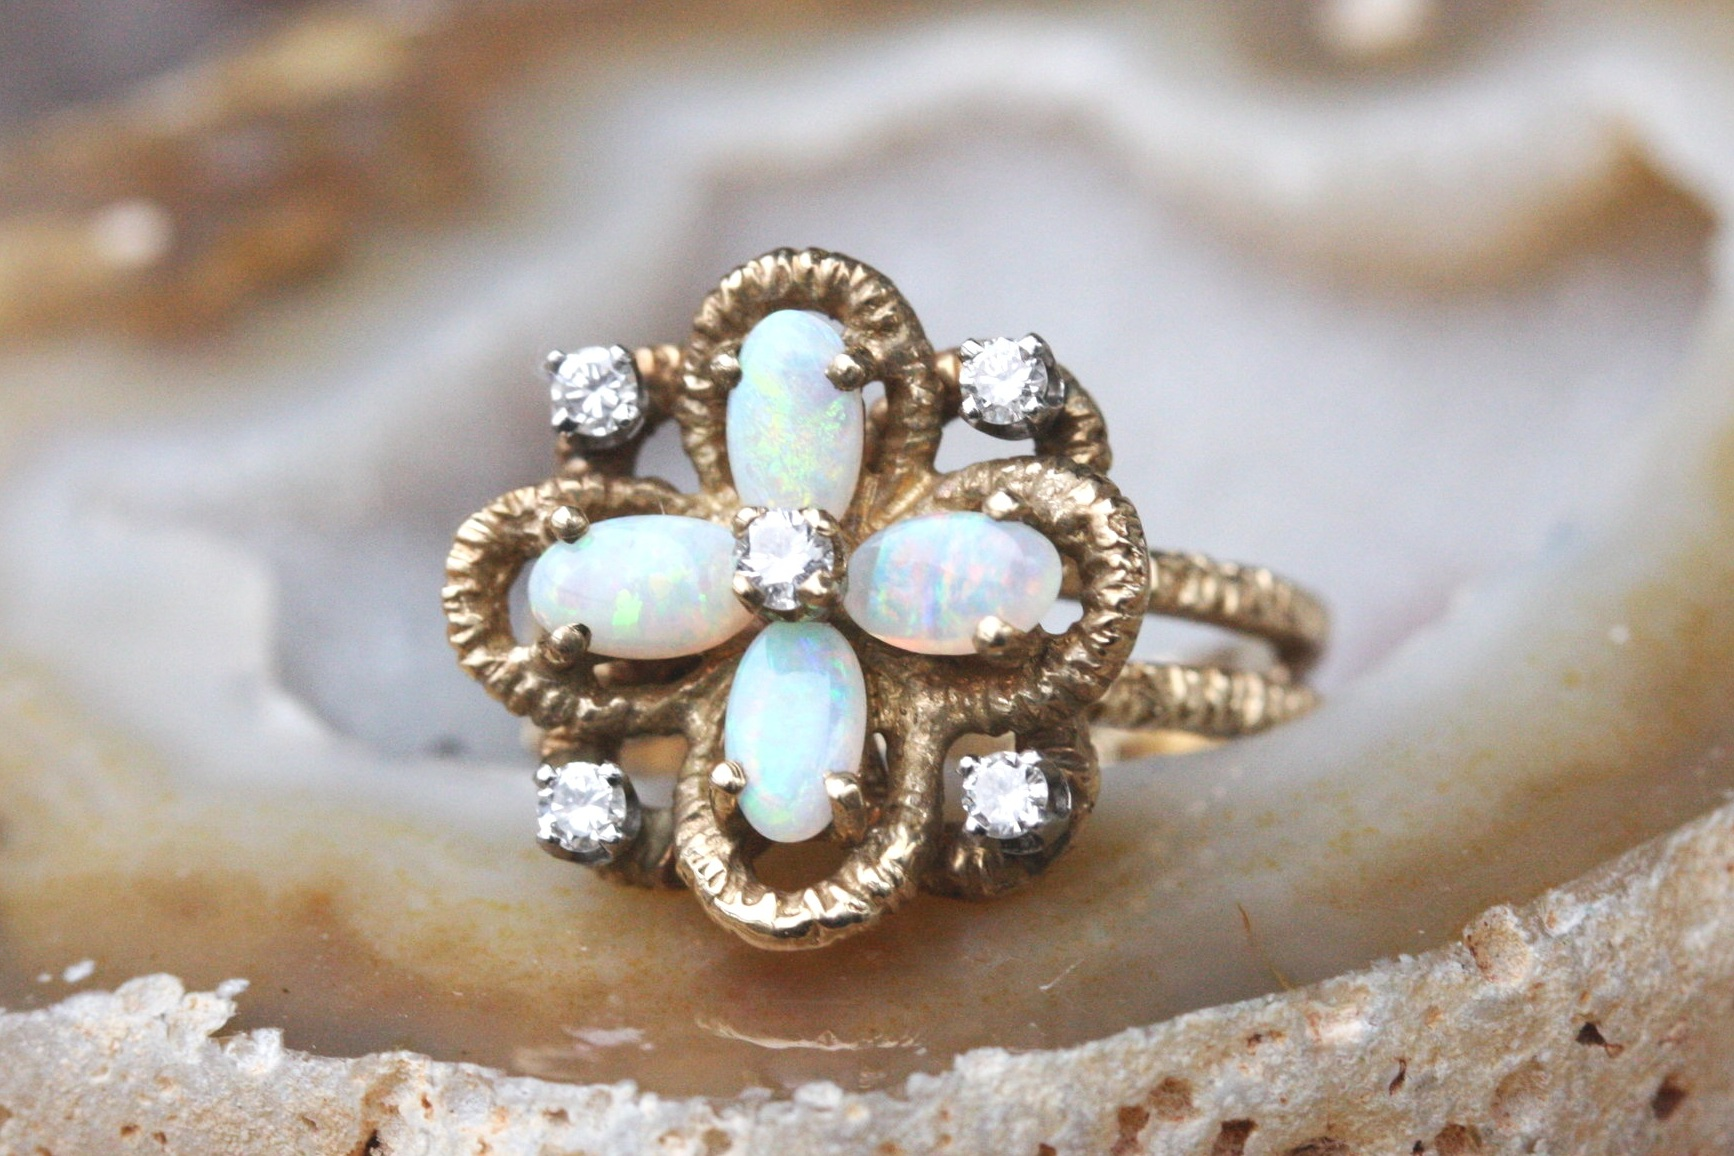 Vintage Ring Flower 5 Diamond Opal Double Shank Etched 14K Yellow Gold Page Riggs Consignment_01.JPG